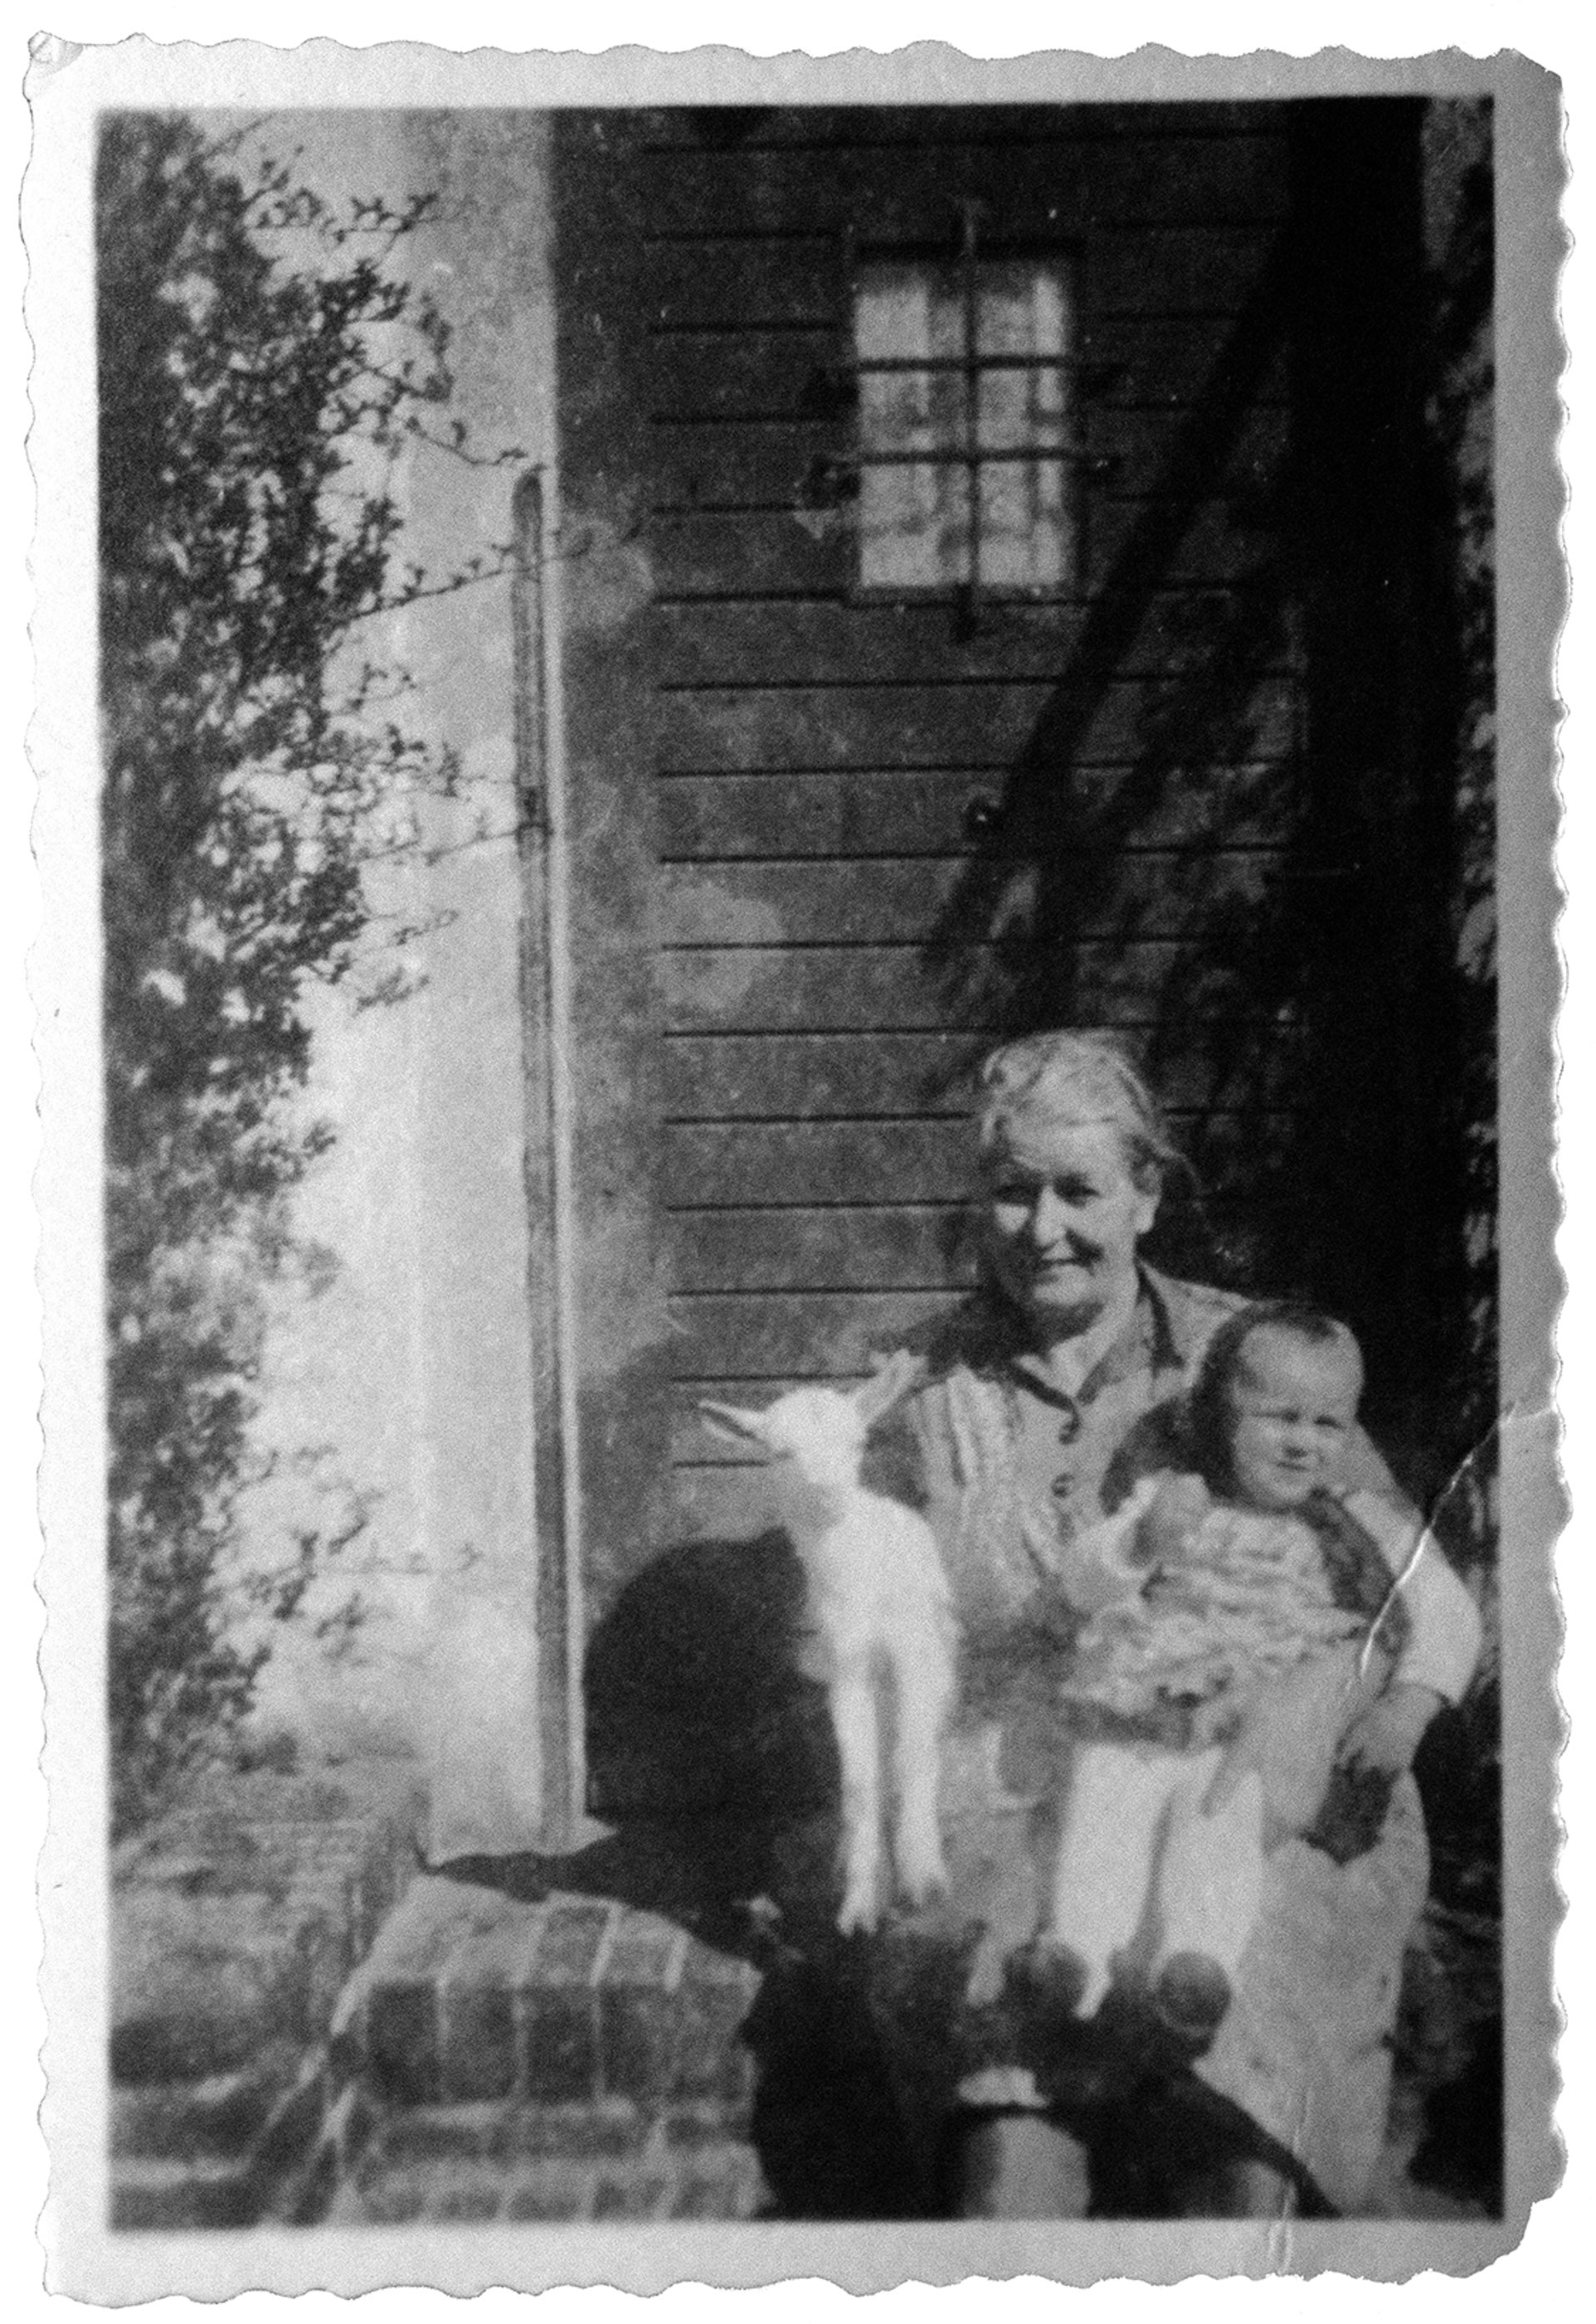 Günther Freier's mother at the door of their Gross Gaglow house, back in the day. He's lived there since he was 5.